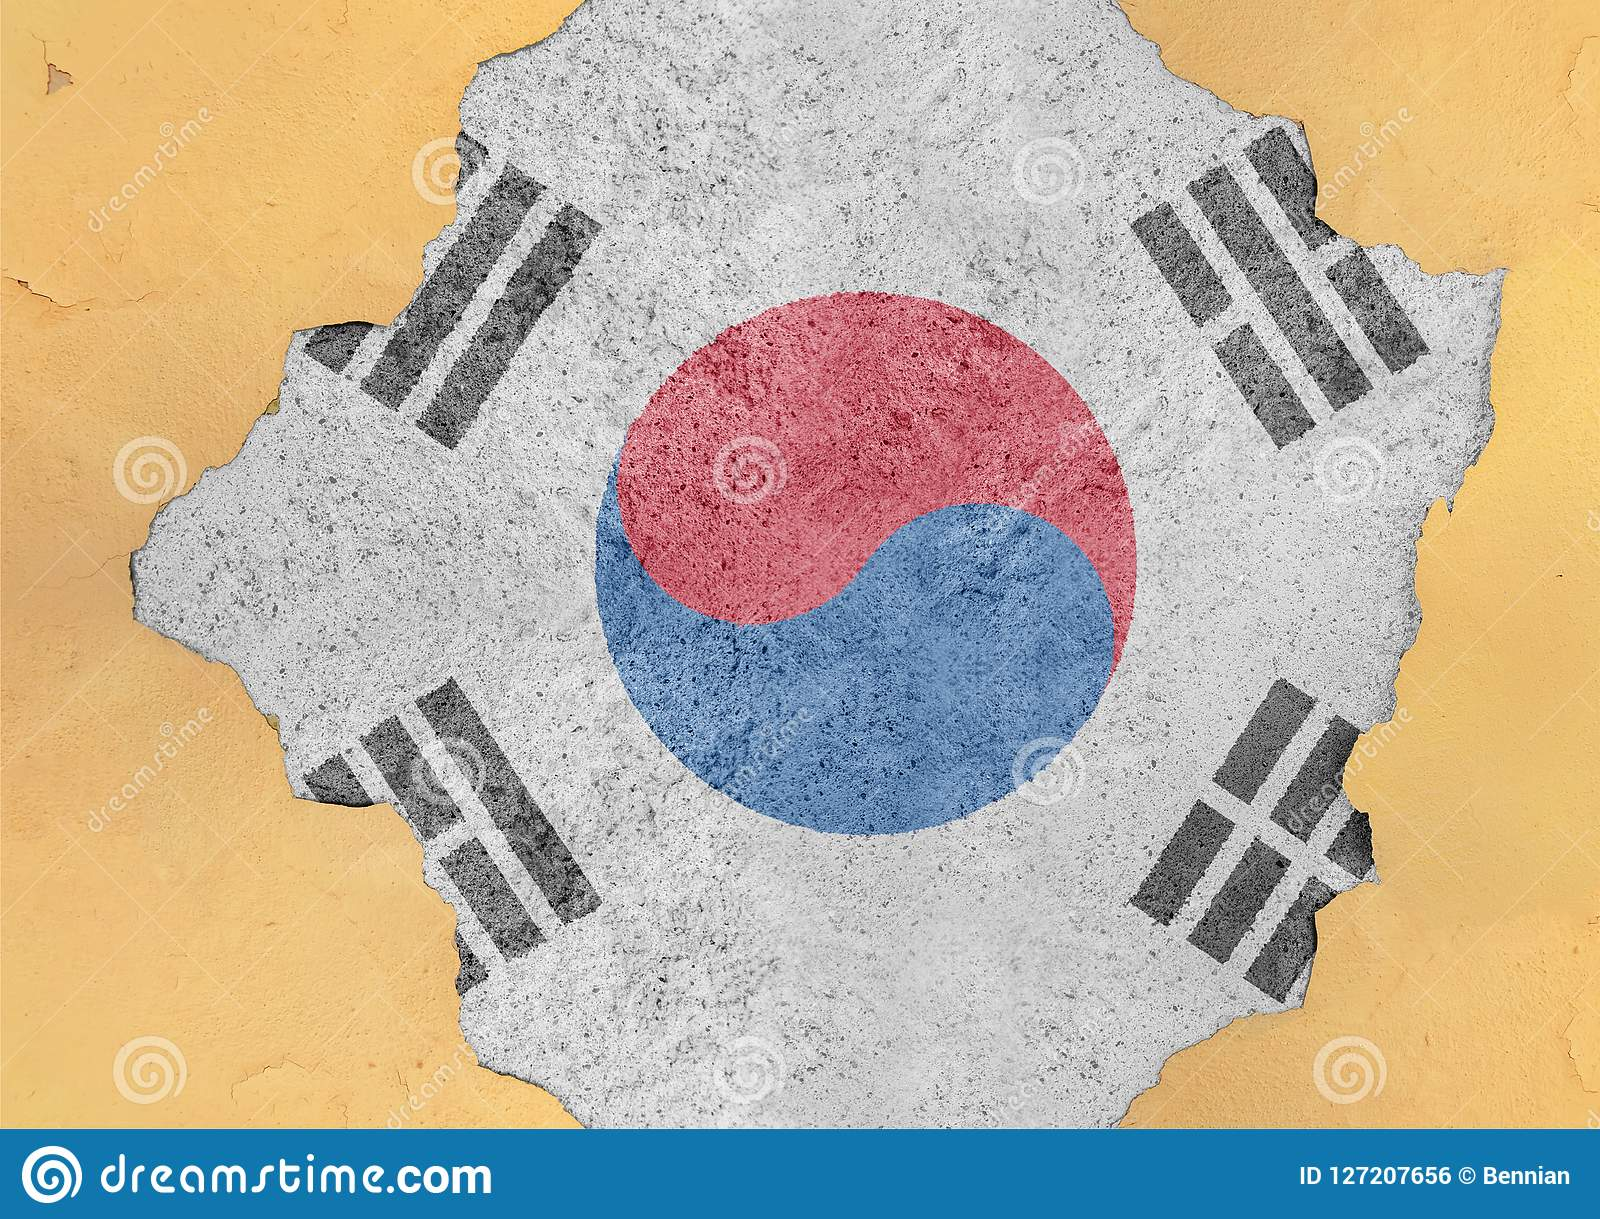 South Korea flag in big concrete cracked hole and broken material